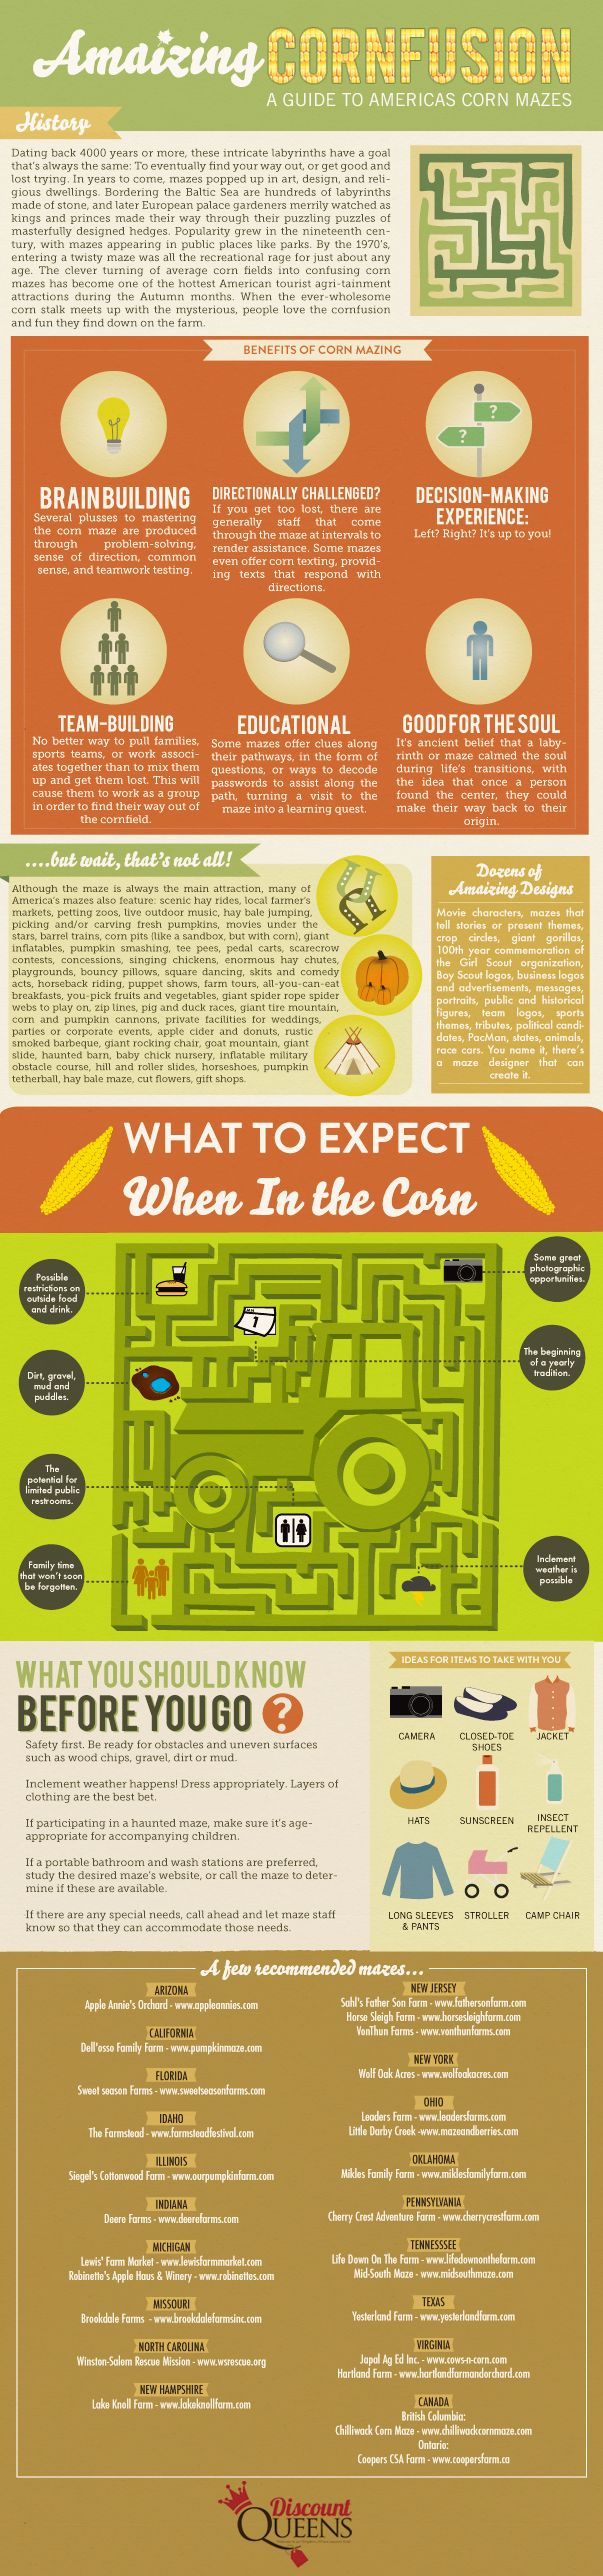 I got to do the content for this infographic on America's Corn Mazes! Pretty fun! It features The Farmstead in Meridian, Idaho, too. :)